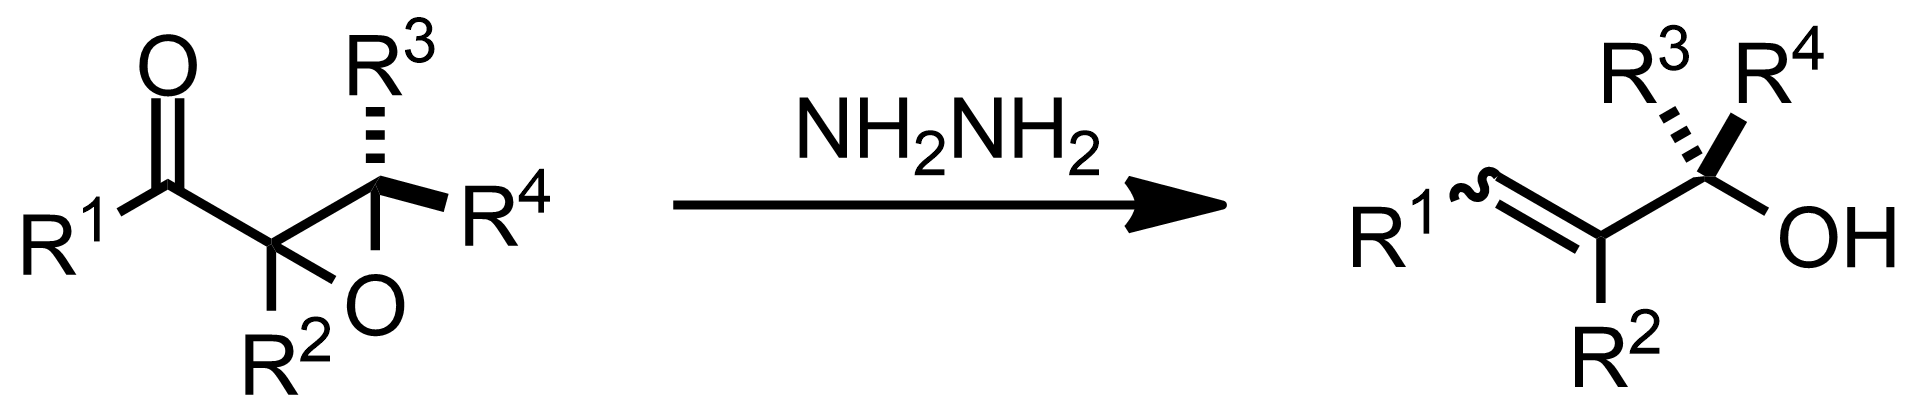 Schematic representation of the Wharton Reaction.